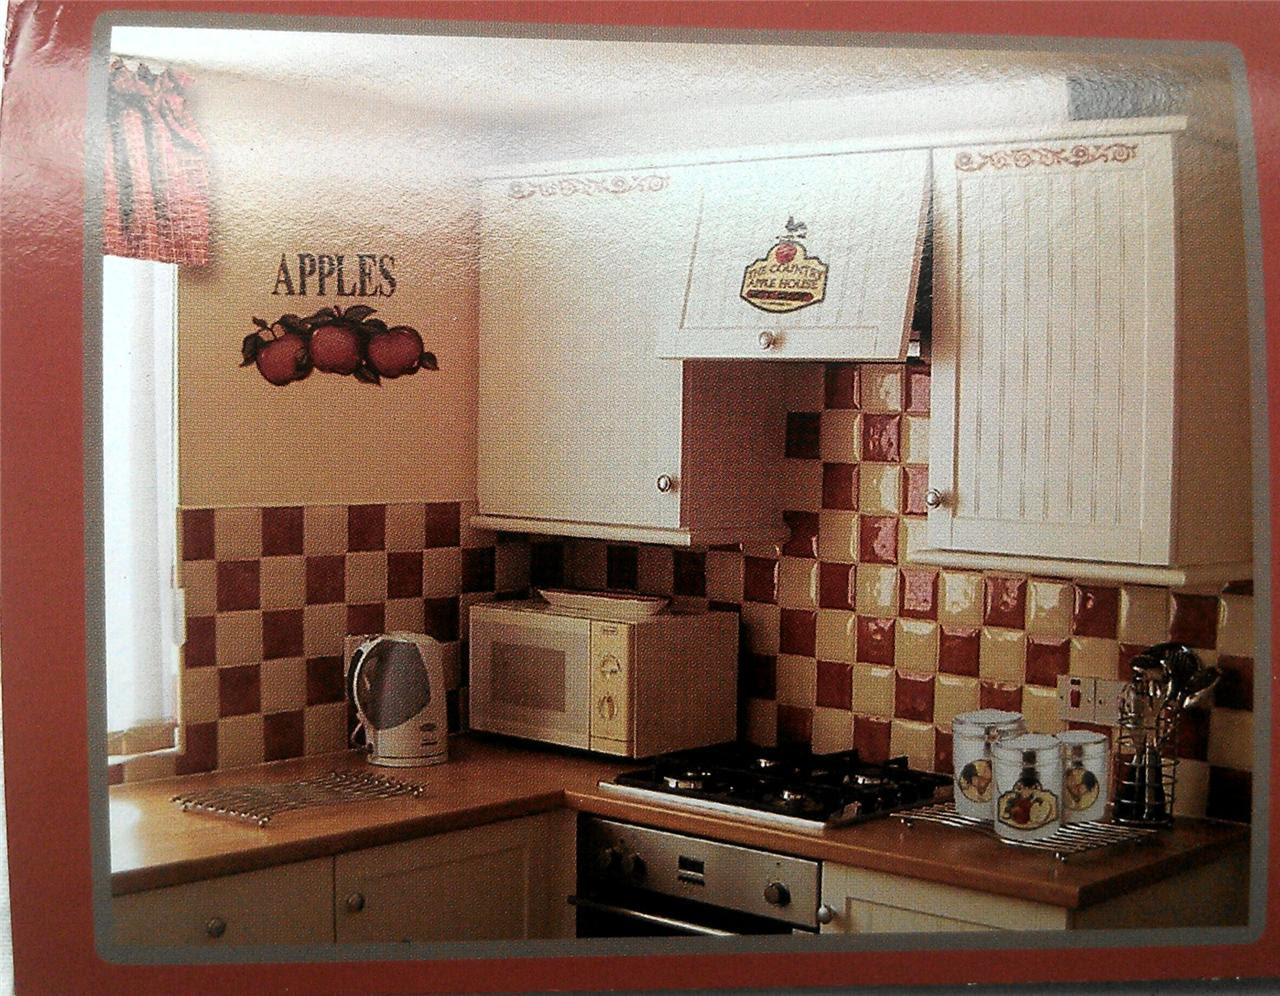 Idea Kitchen Decor With Apples Or Fruit Home Design And Decor Reviews